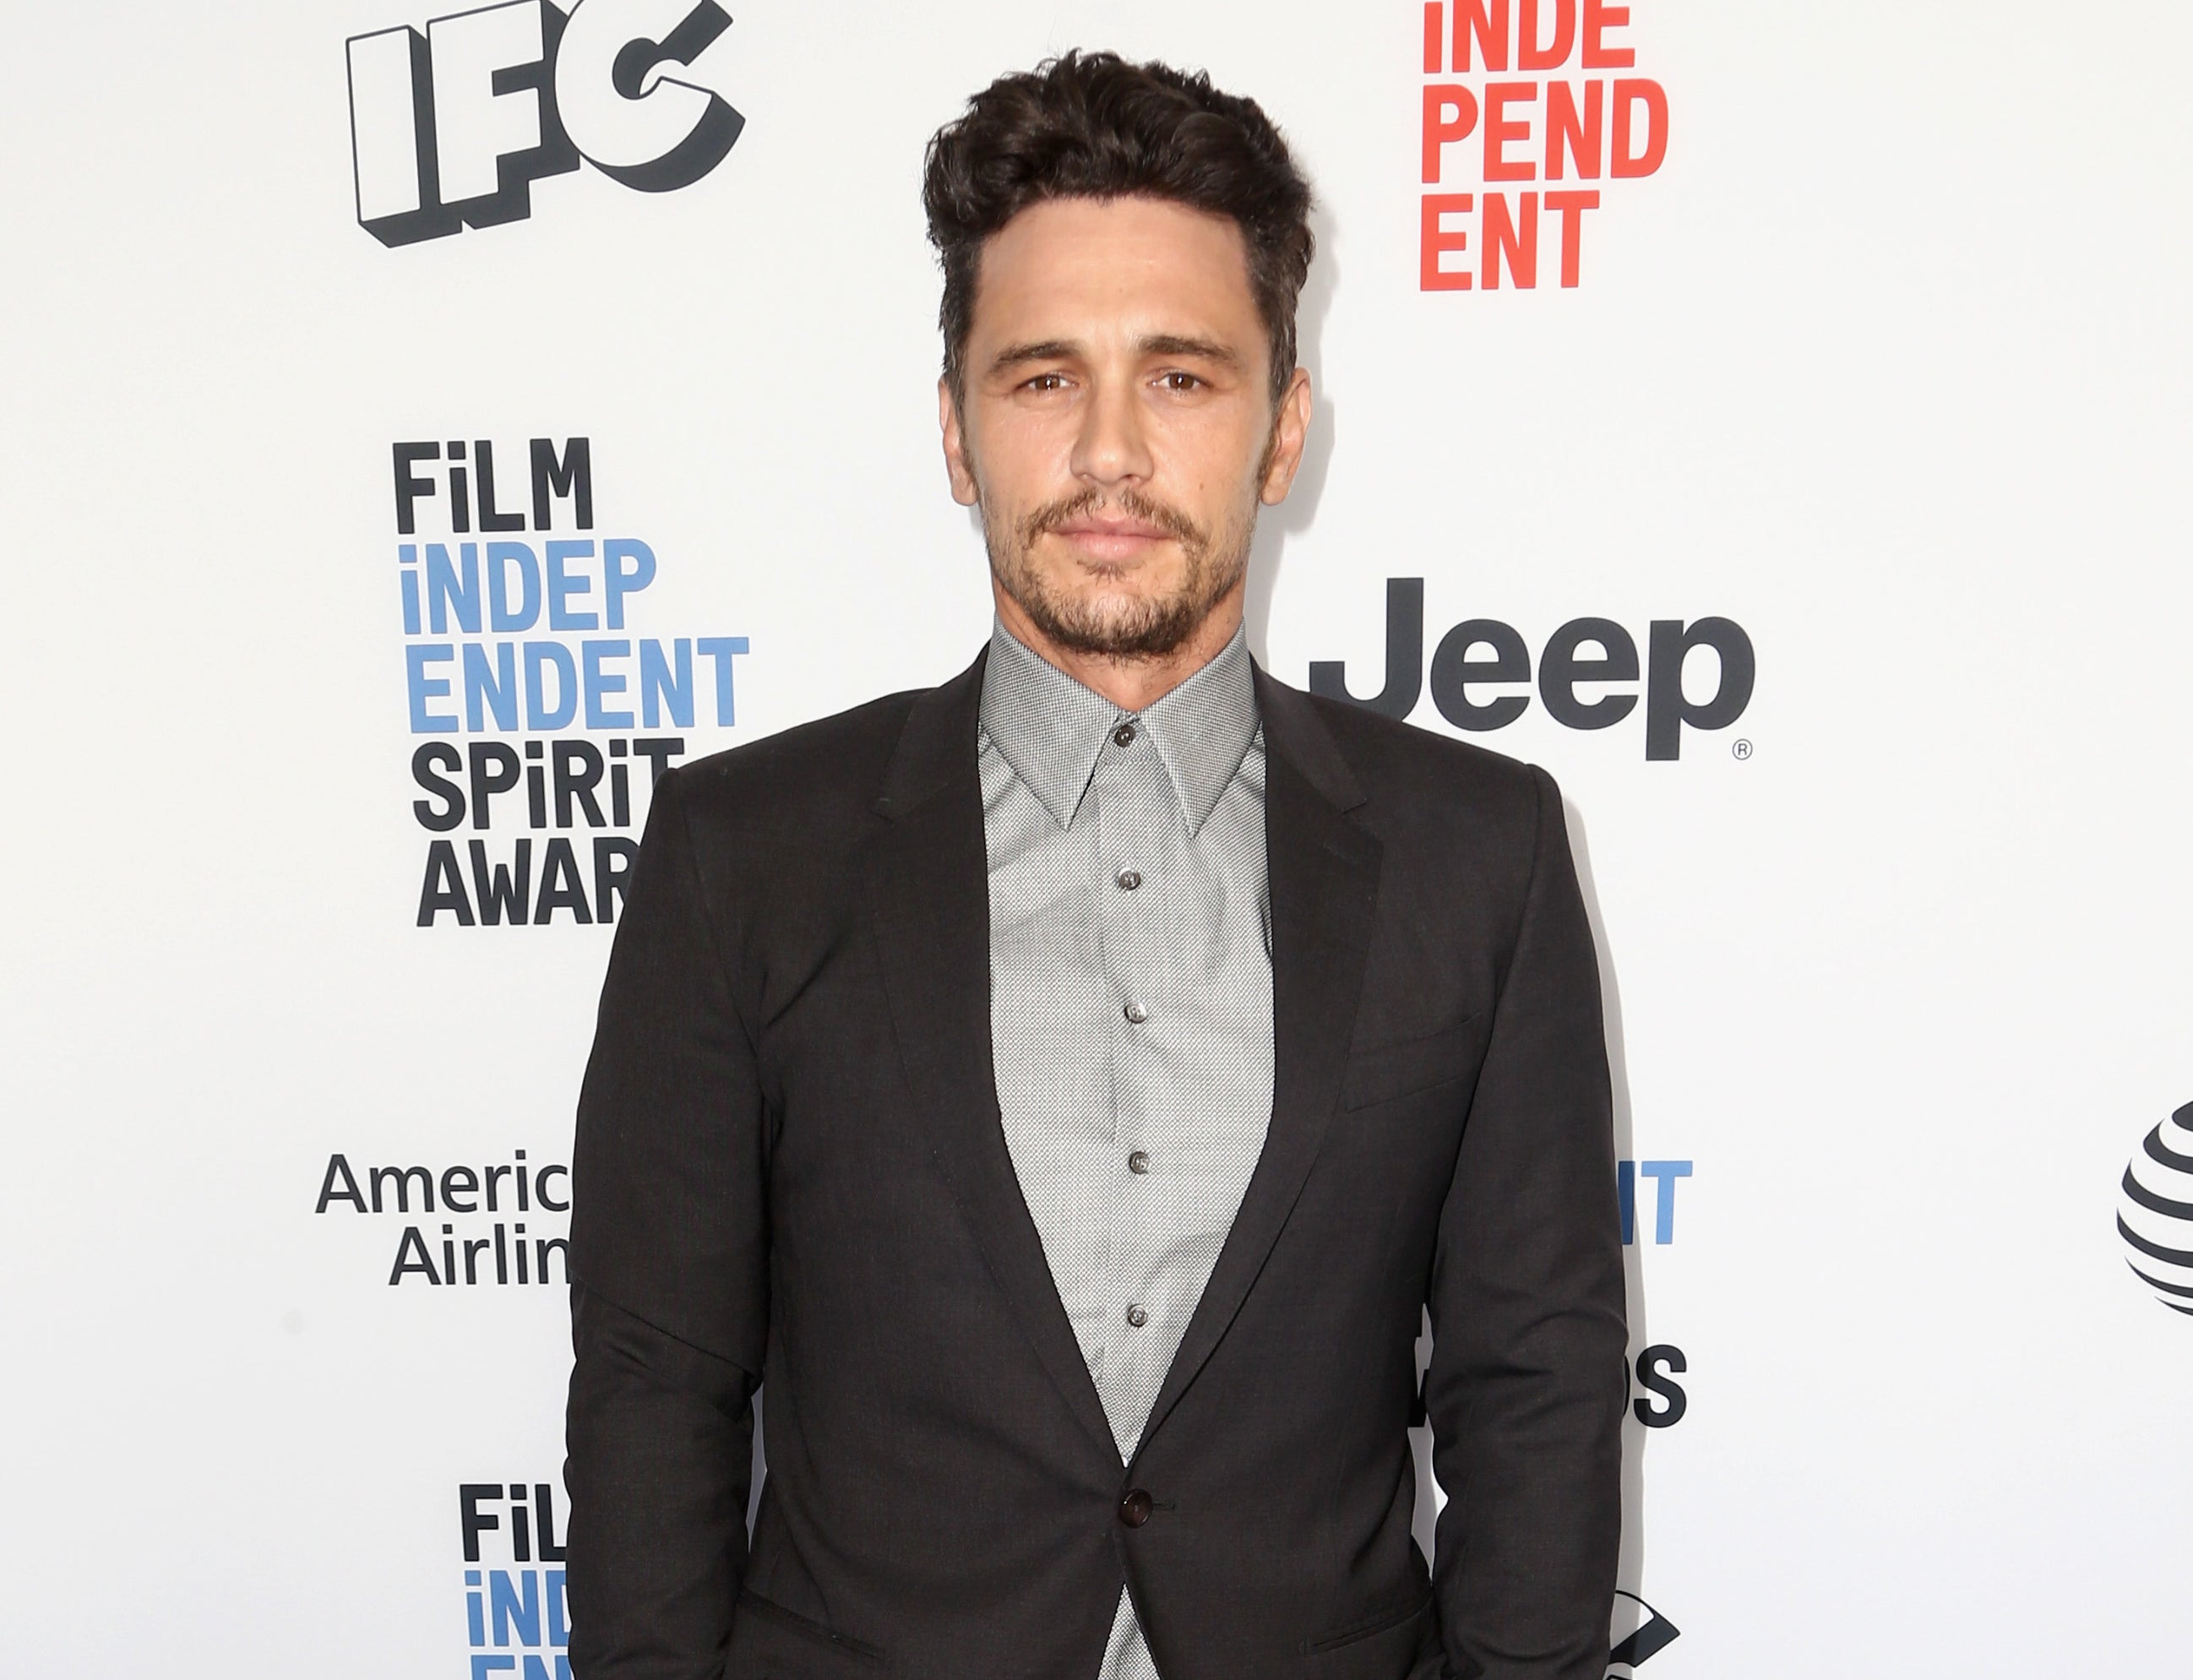 James on the red carpet